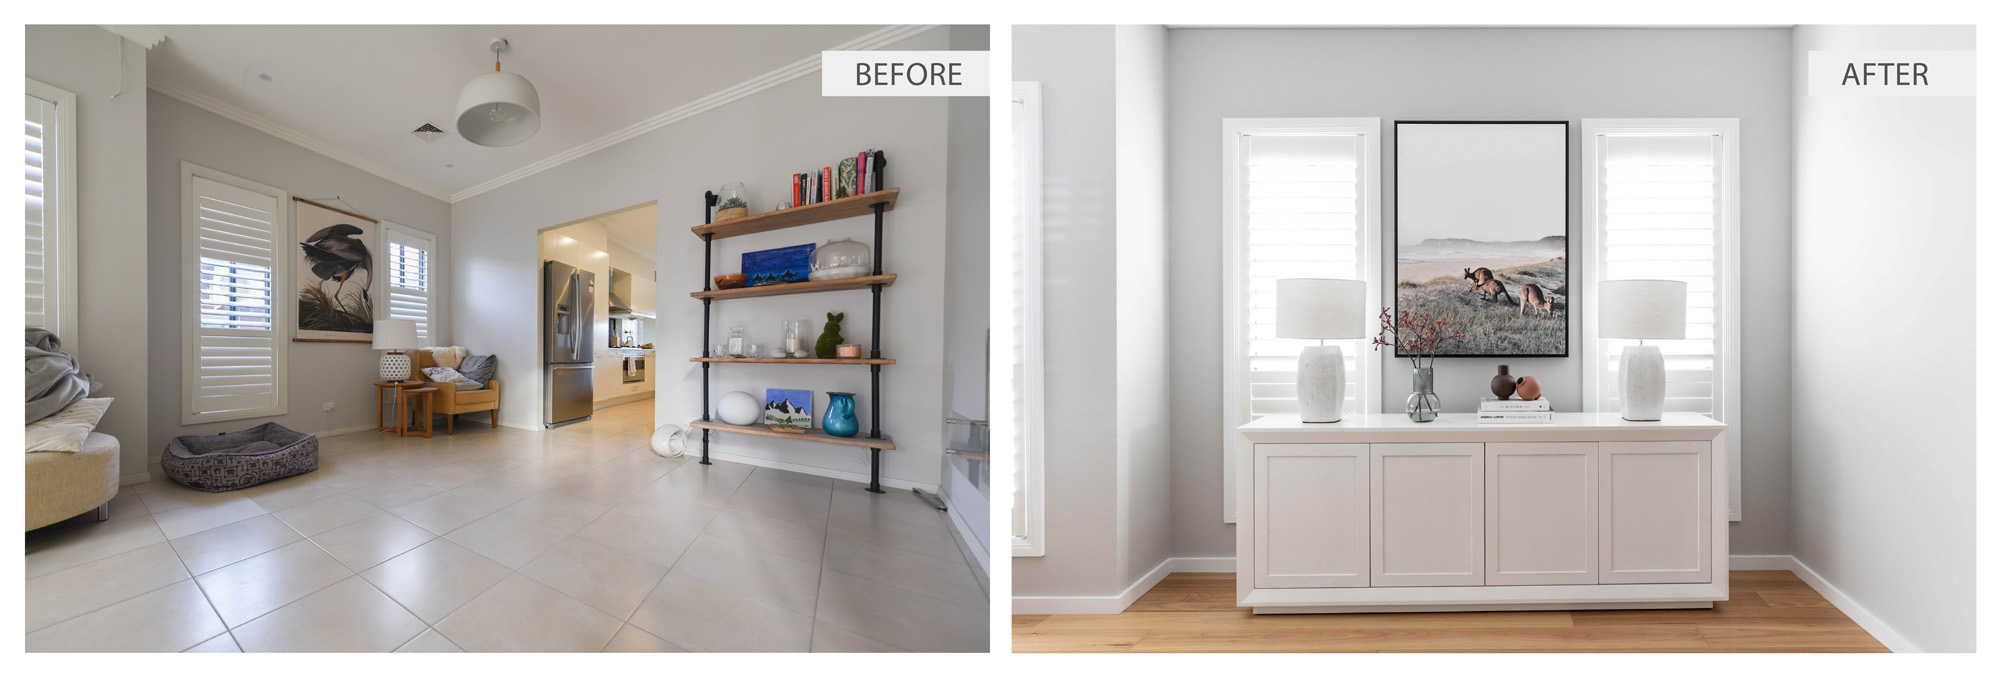 RODD POINT HOUSE - BEFORE / AFTER